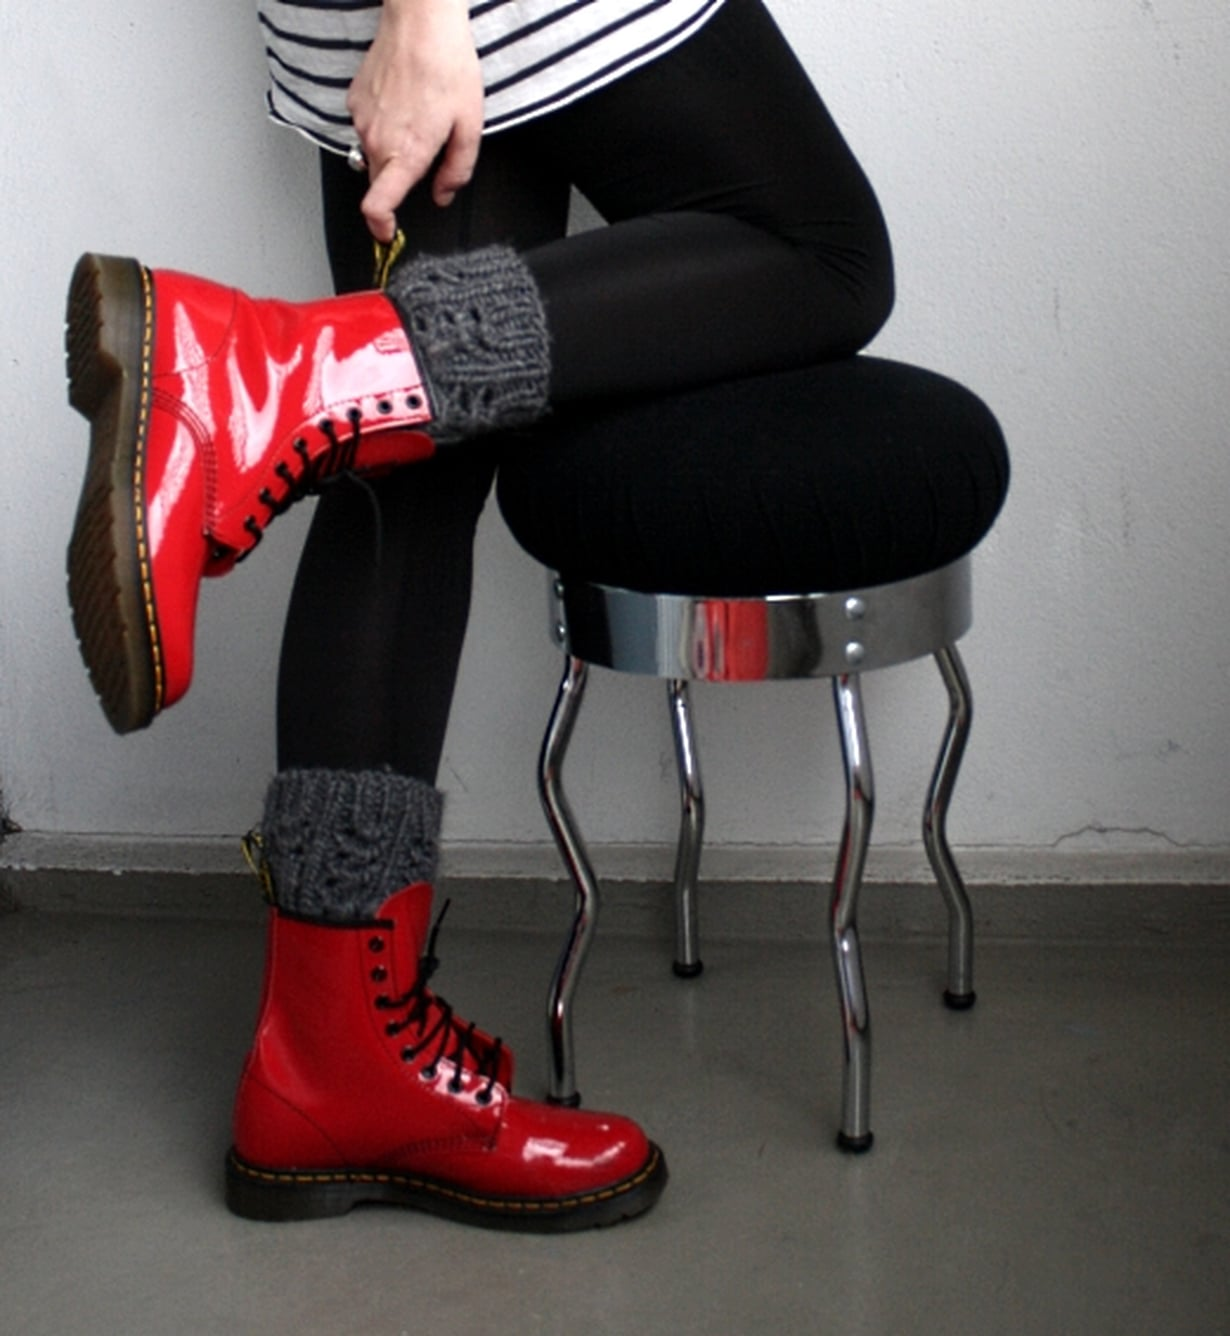 red martens